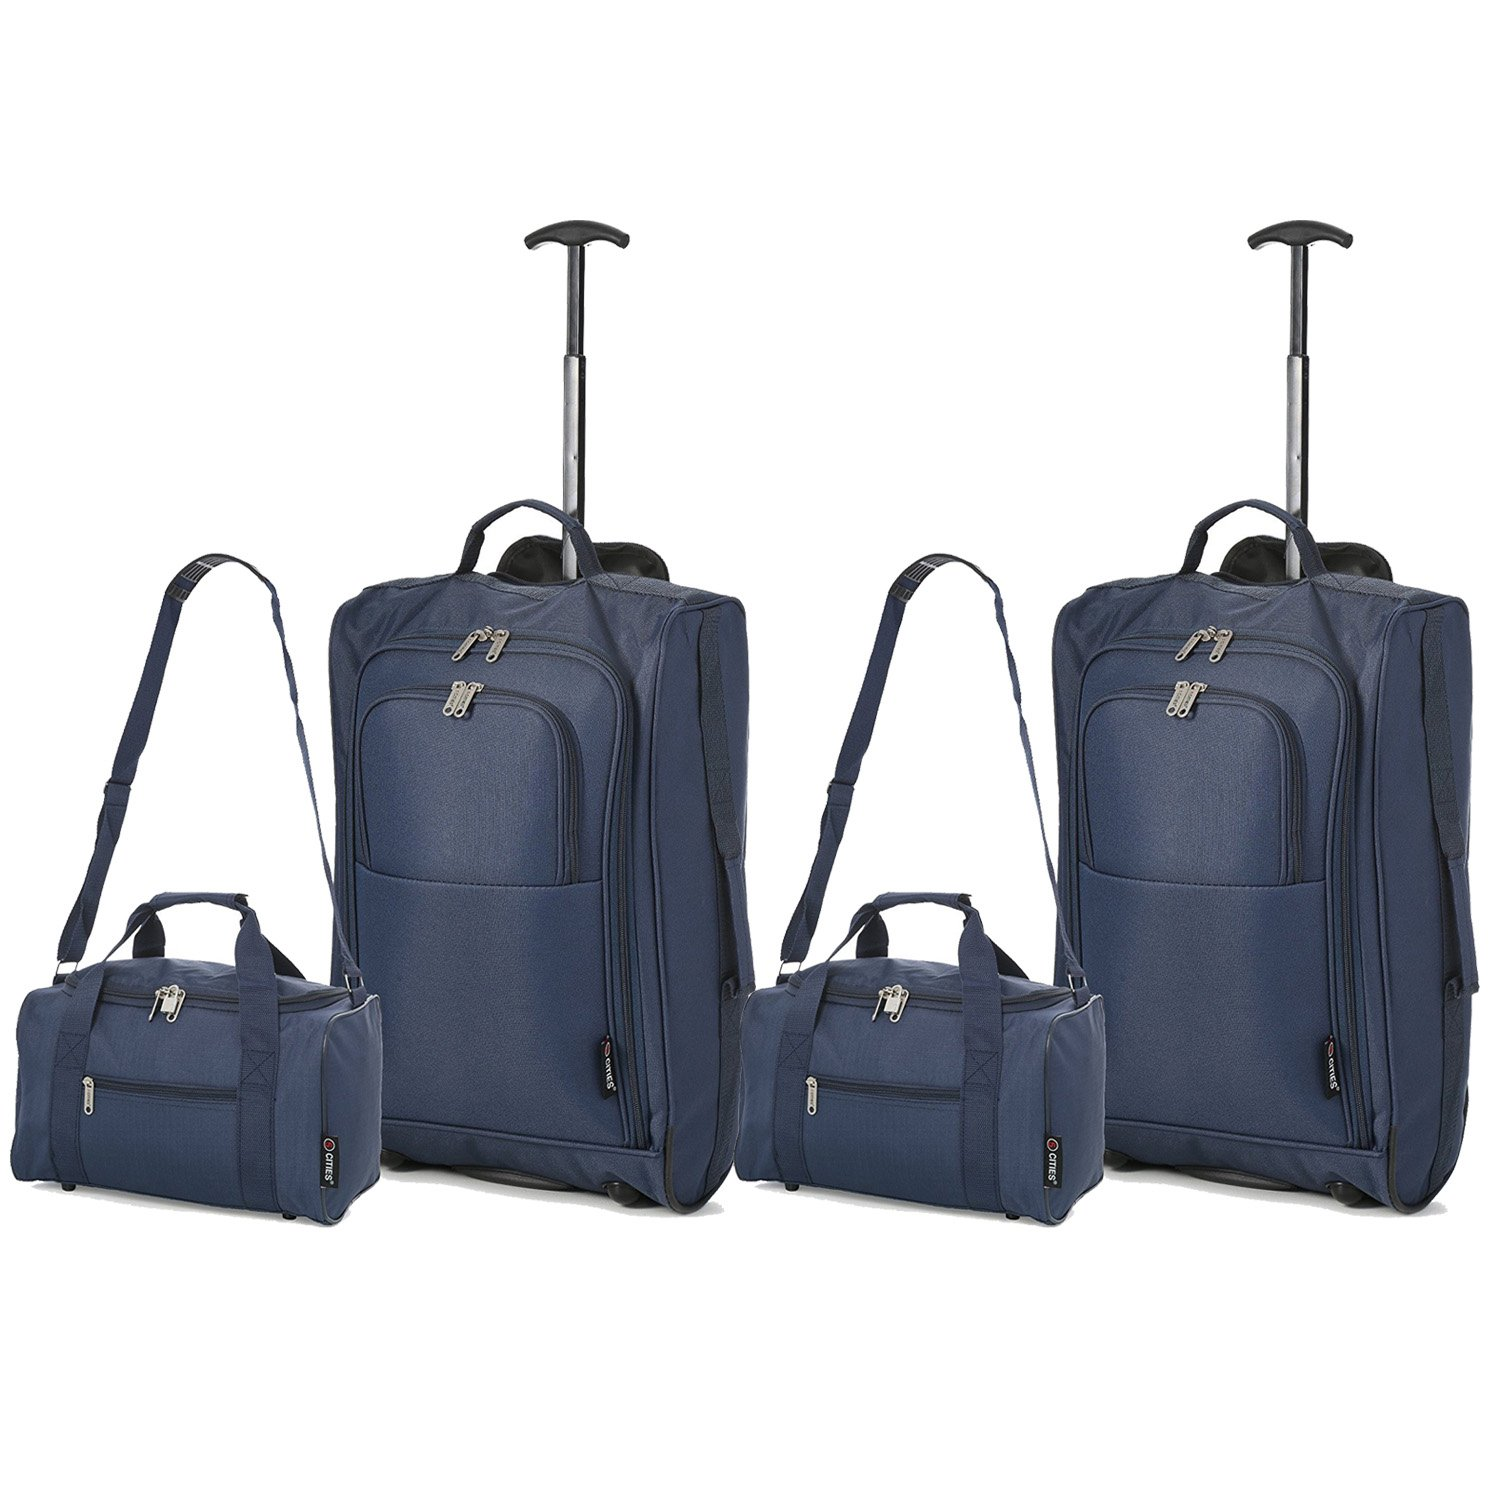 5 Cities Set Of 2 Ryanair Cabin Approved Main and Second Carry On Both Hand Luggage, 54 cm, 42.0 L, Black SETOF2TB023-830BLK+HOLD601BLK